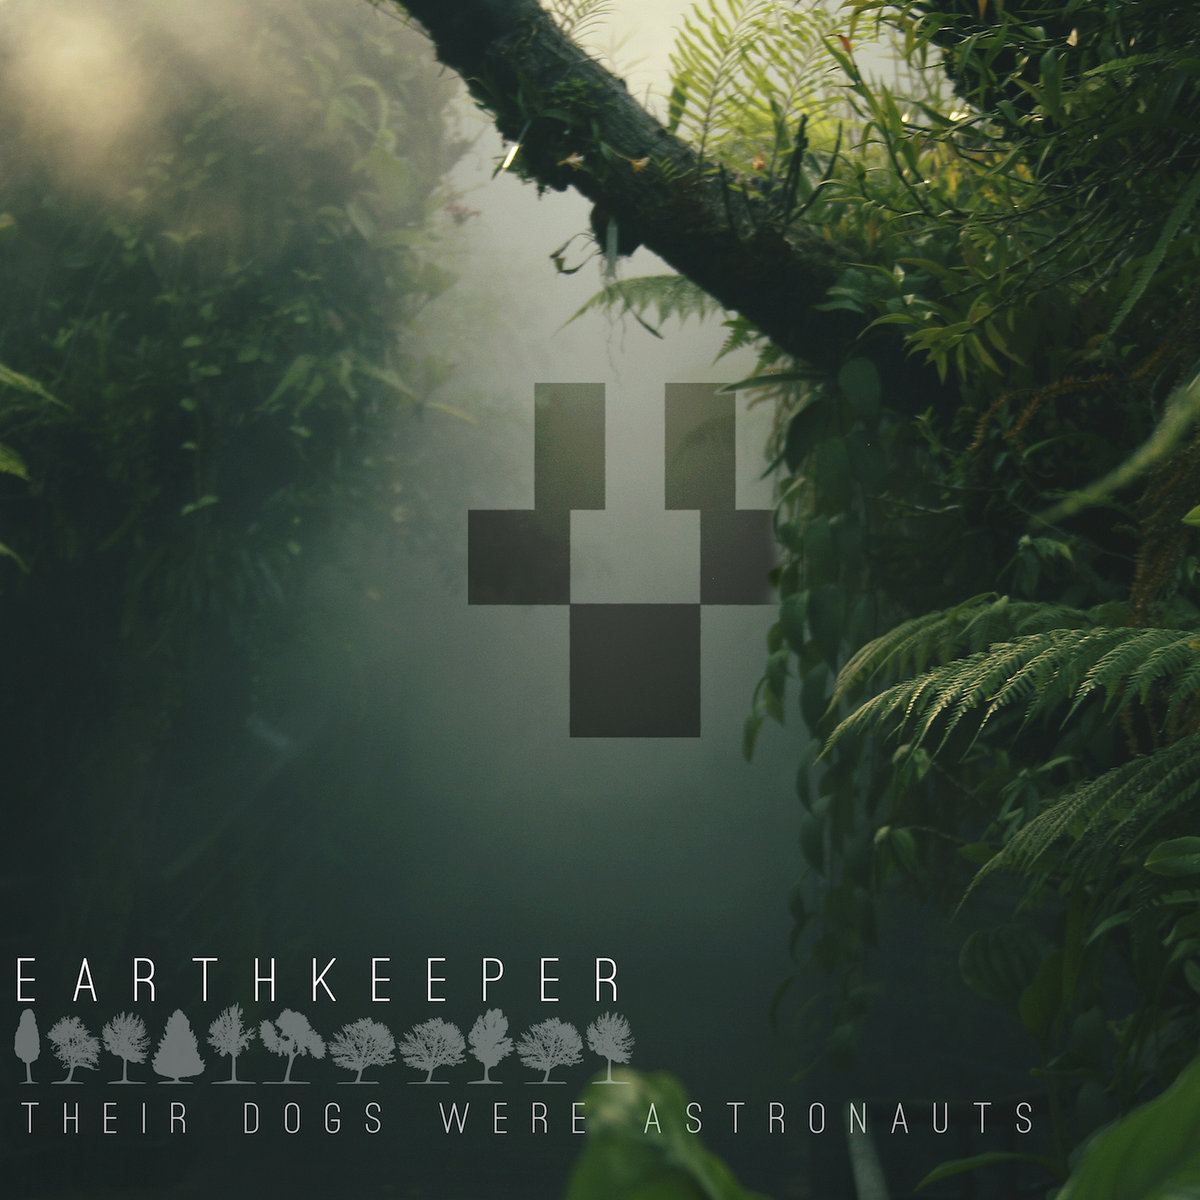 Their Dogs Were Astronauts - Worn Out Space @ 'Earthkeeper' album (instrumental metal, metal)